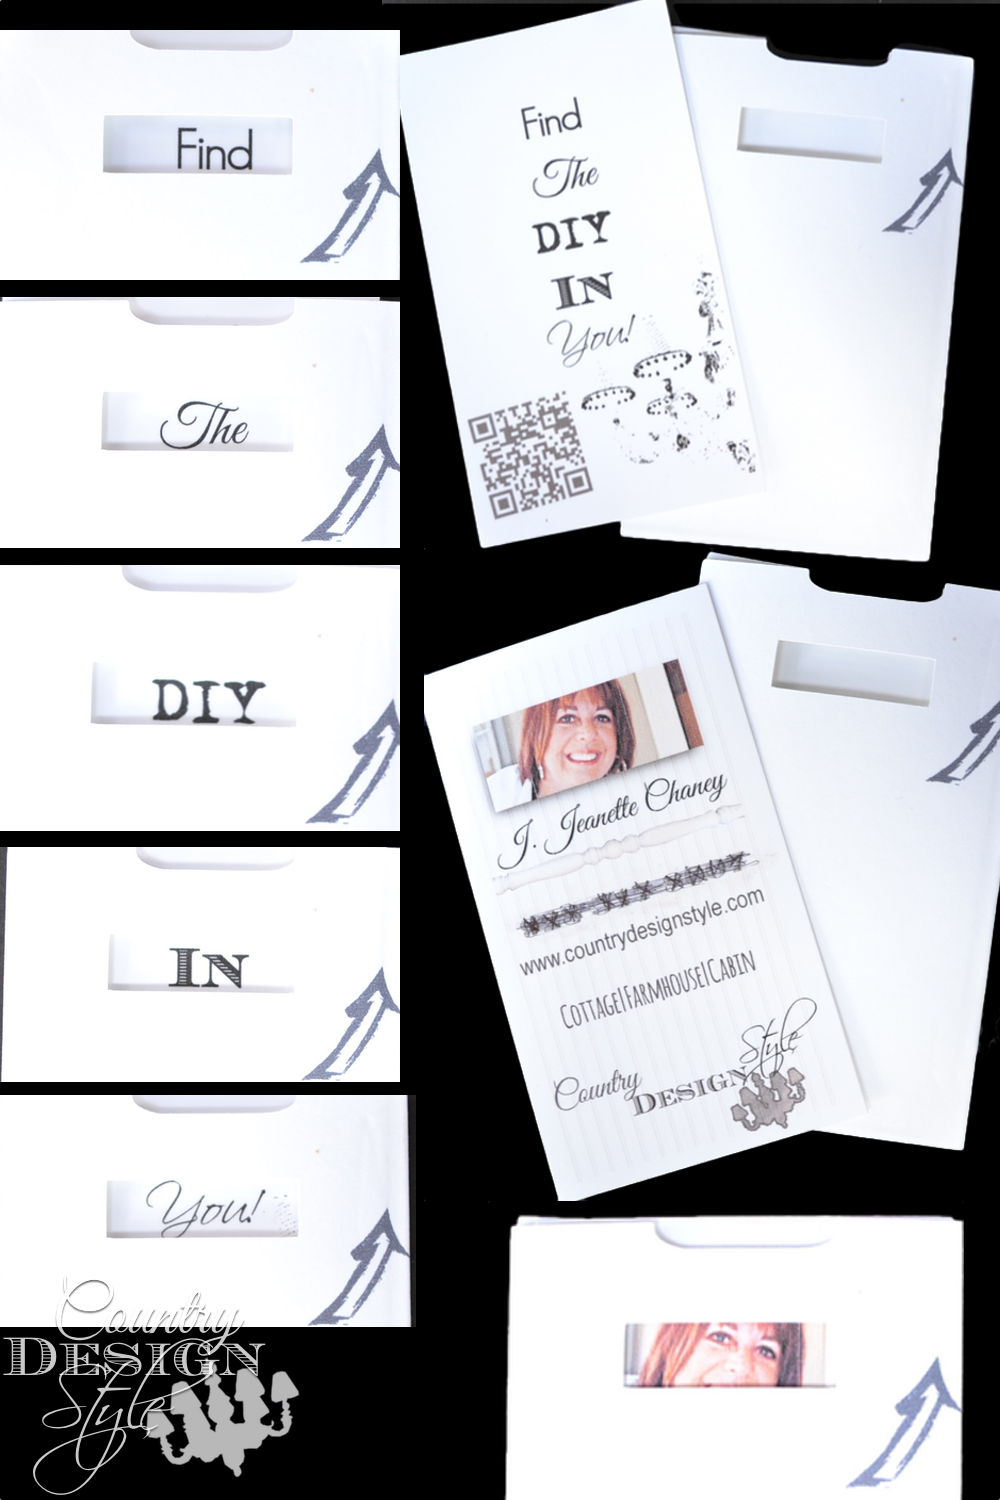 Peek-a-boo-sliding-business-cards.  Needed something creative for an event.  These worked perfect.  Country Design Style